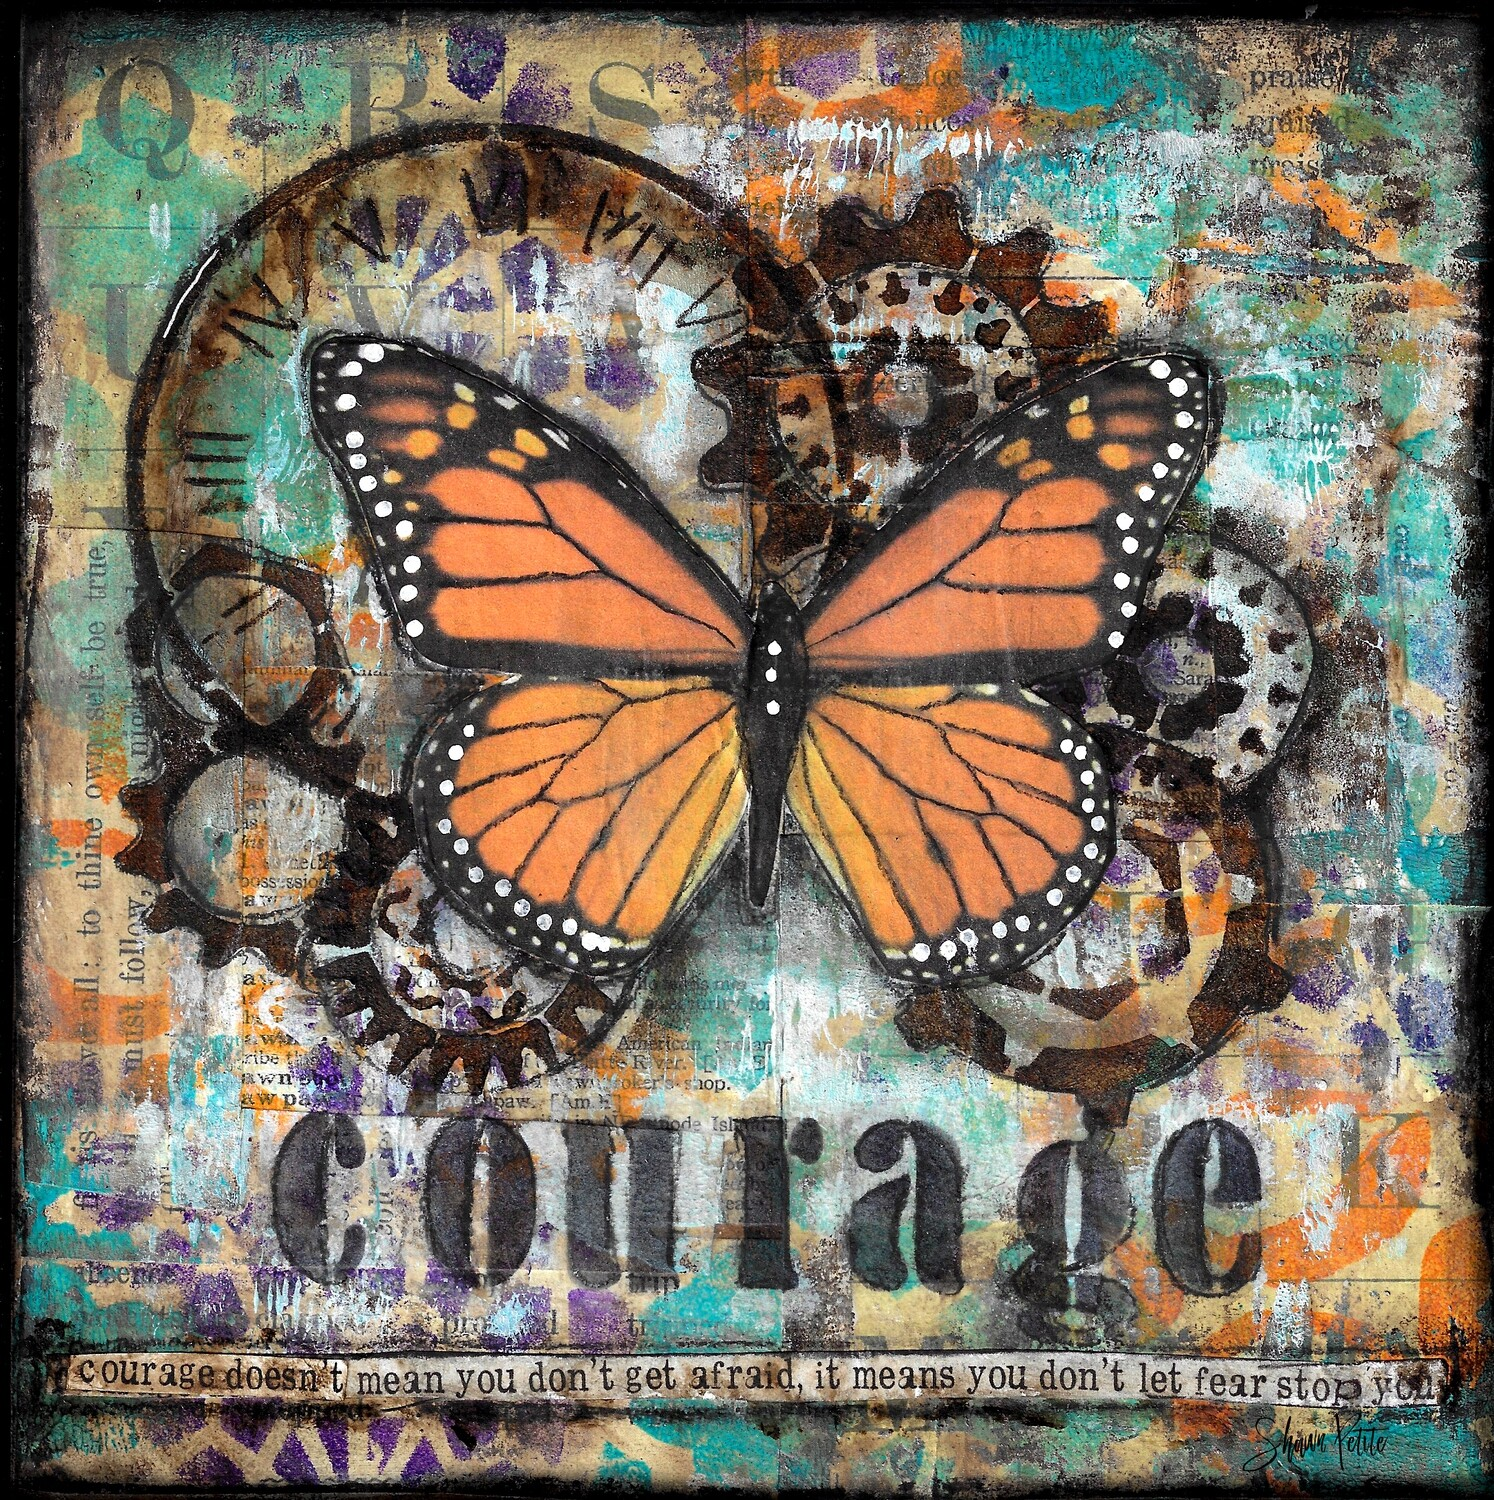 """Courage doesn't mean you don't get afraid, it means you don't let fear stop you"" Print on Wood 4x4 Overstock"